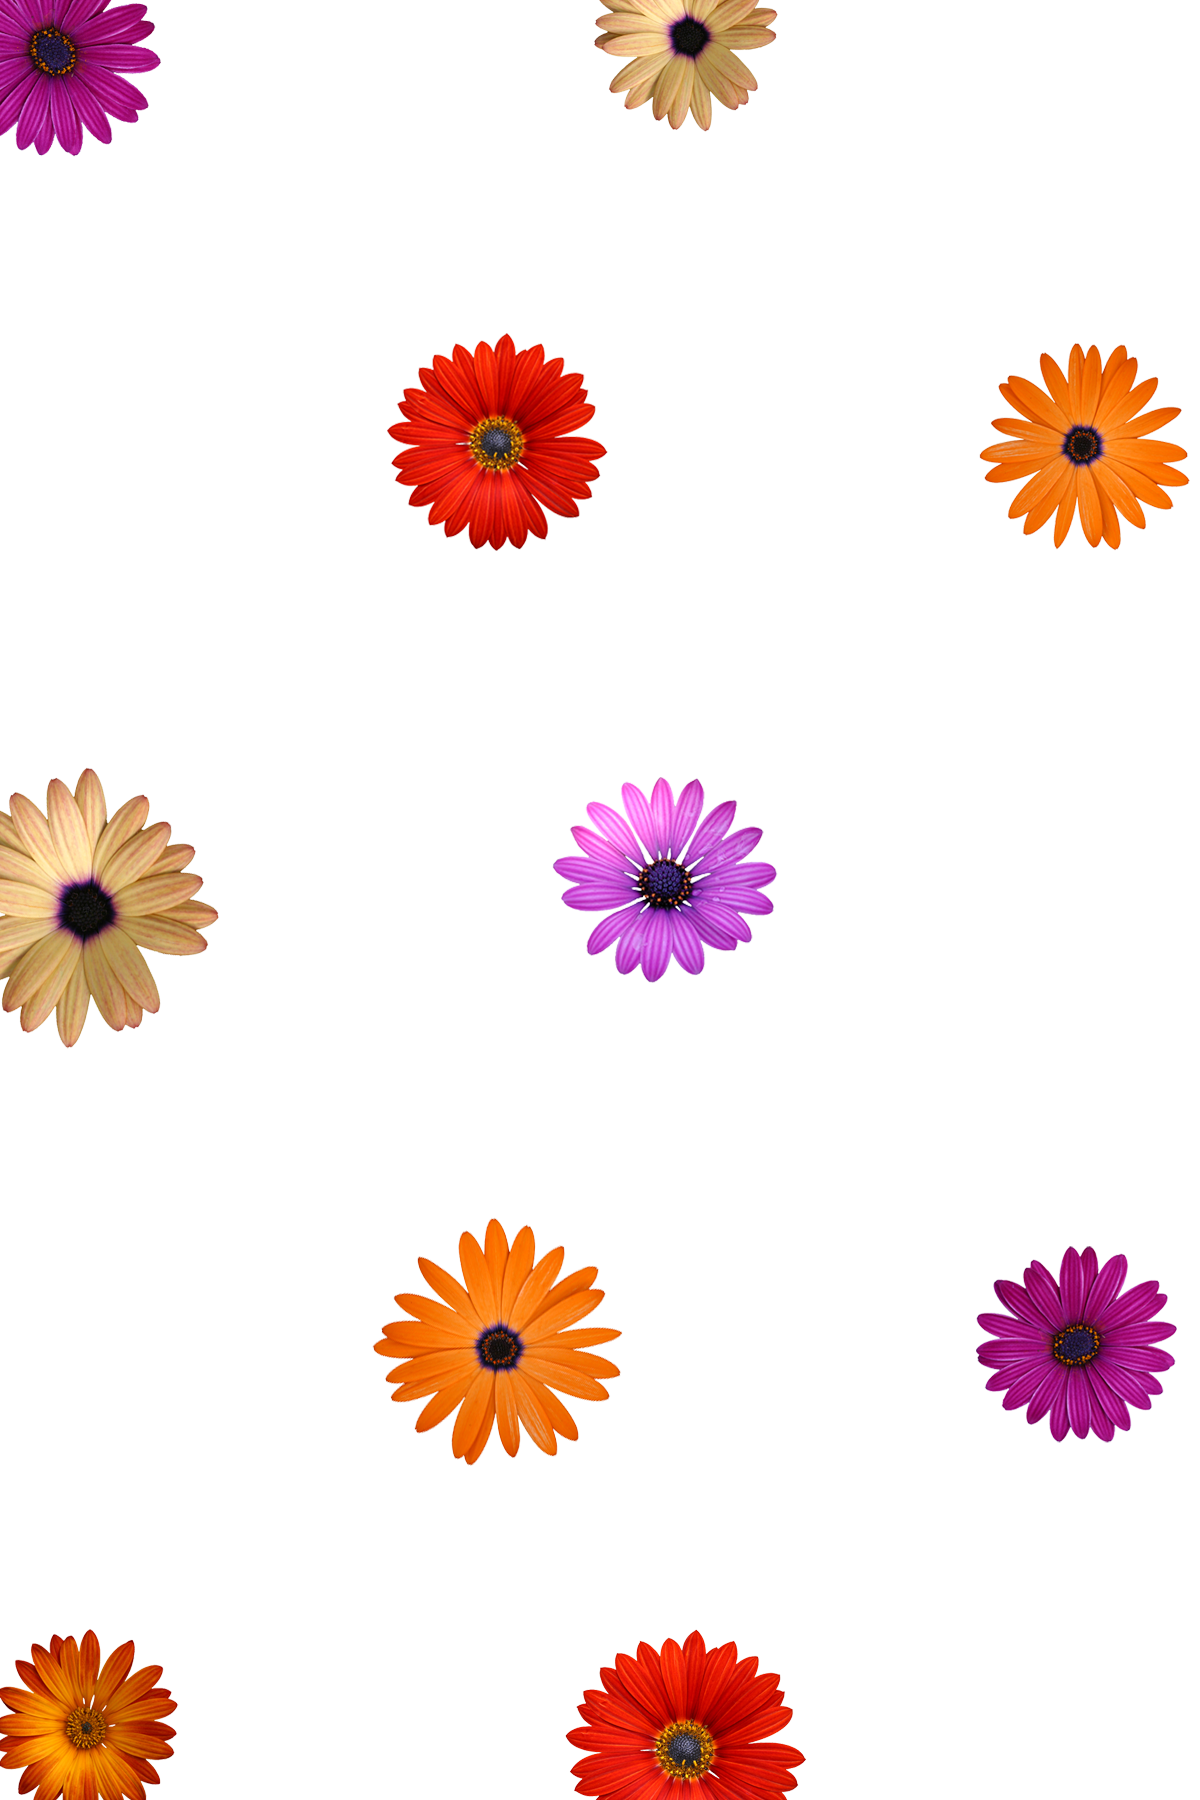 Flower overlays png. Customize the look of